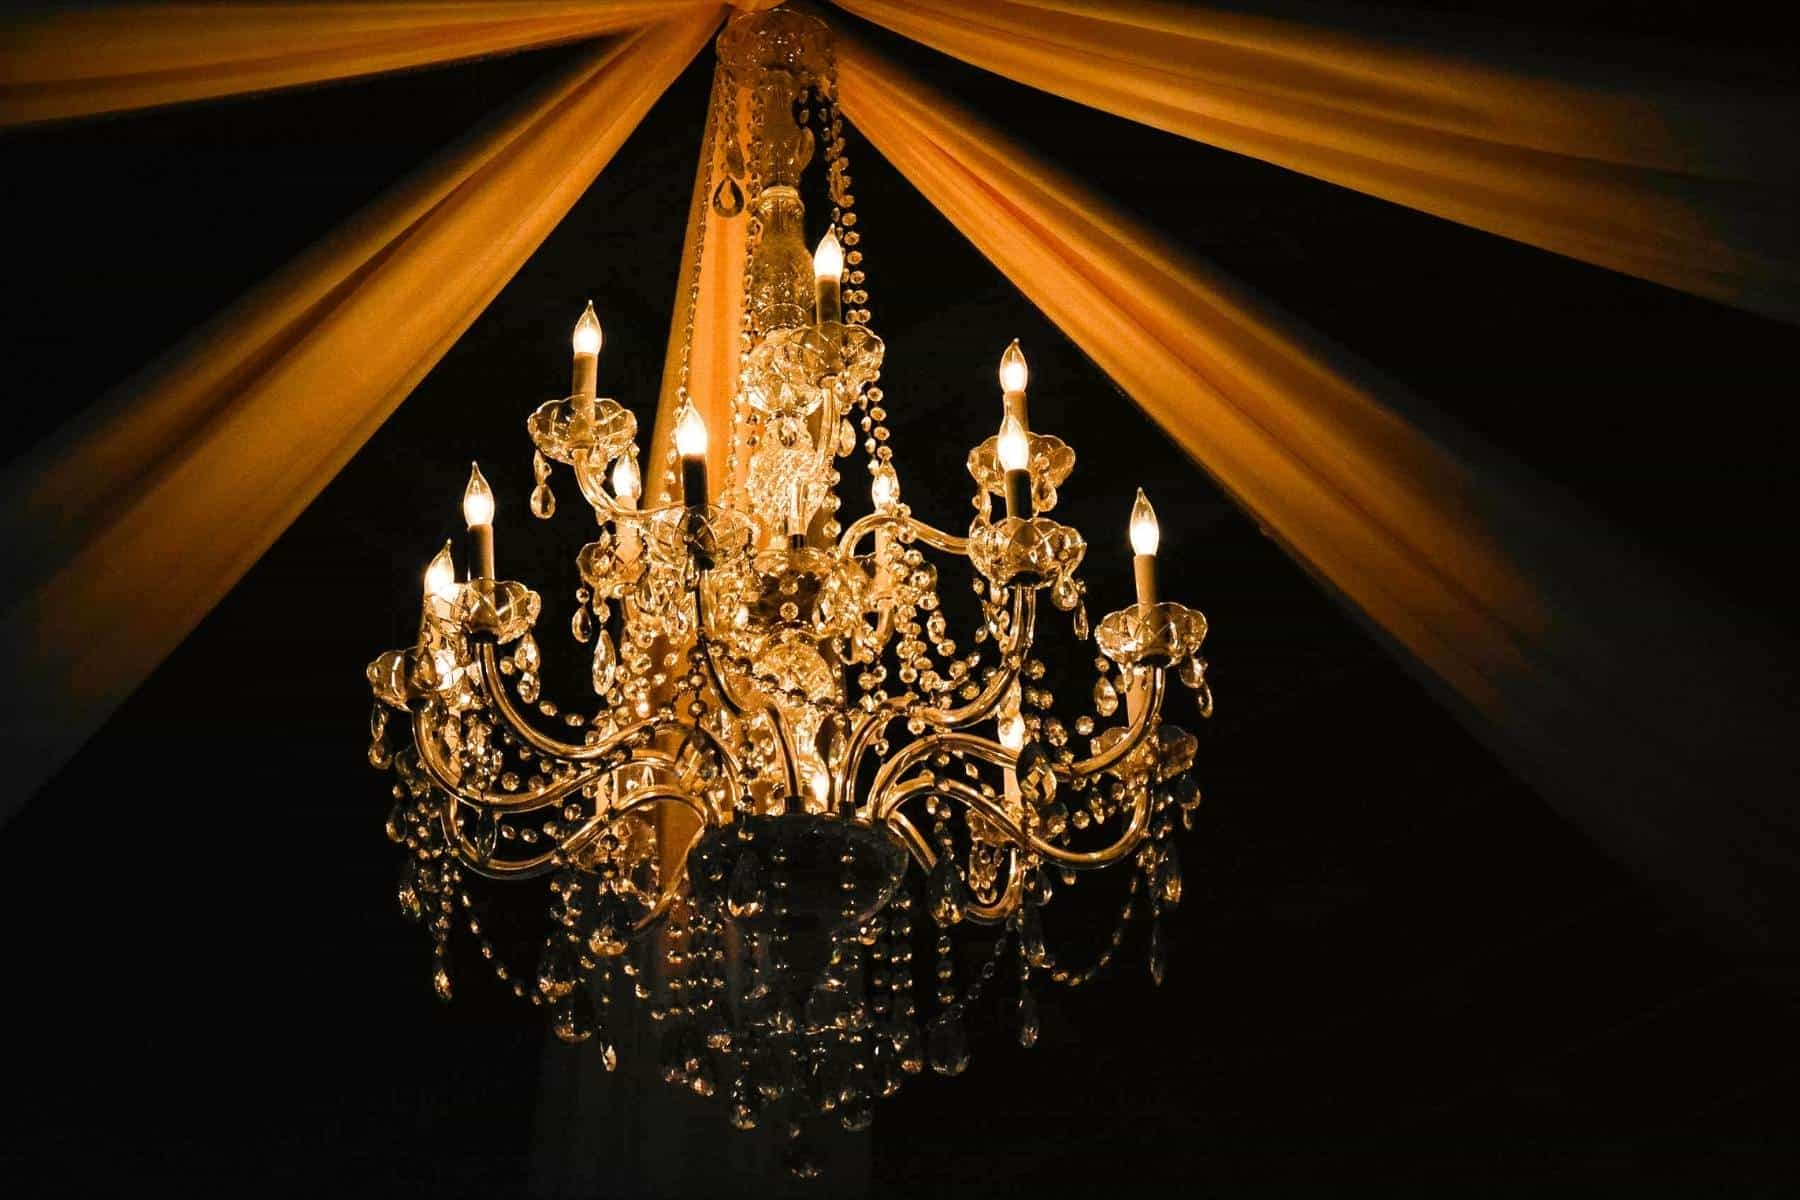 How to Change Light Bulbs in High Chandelier